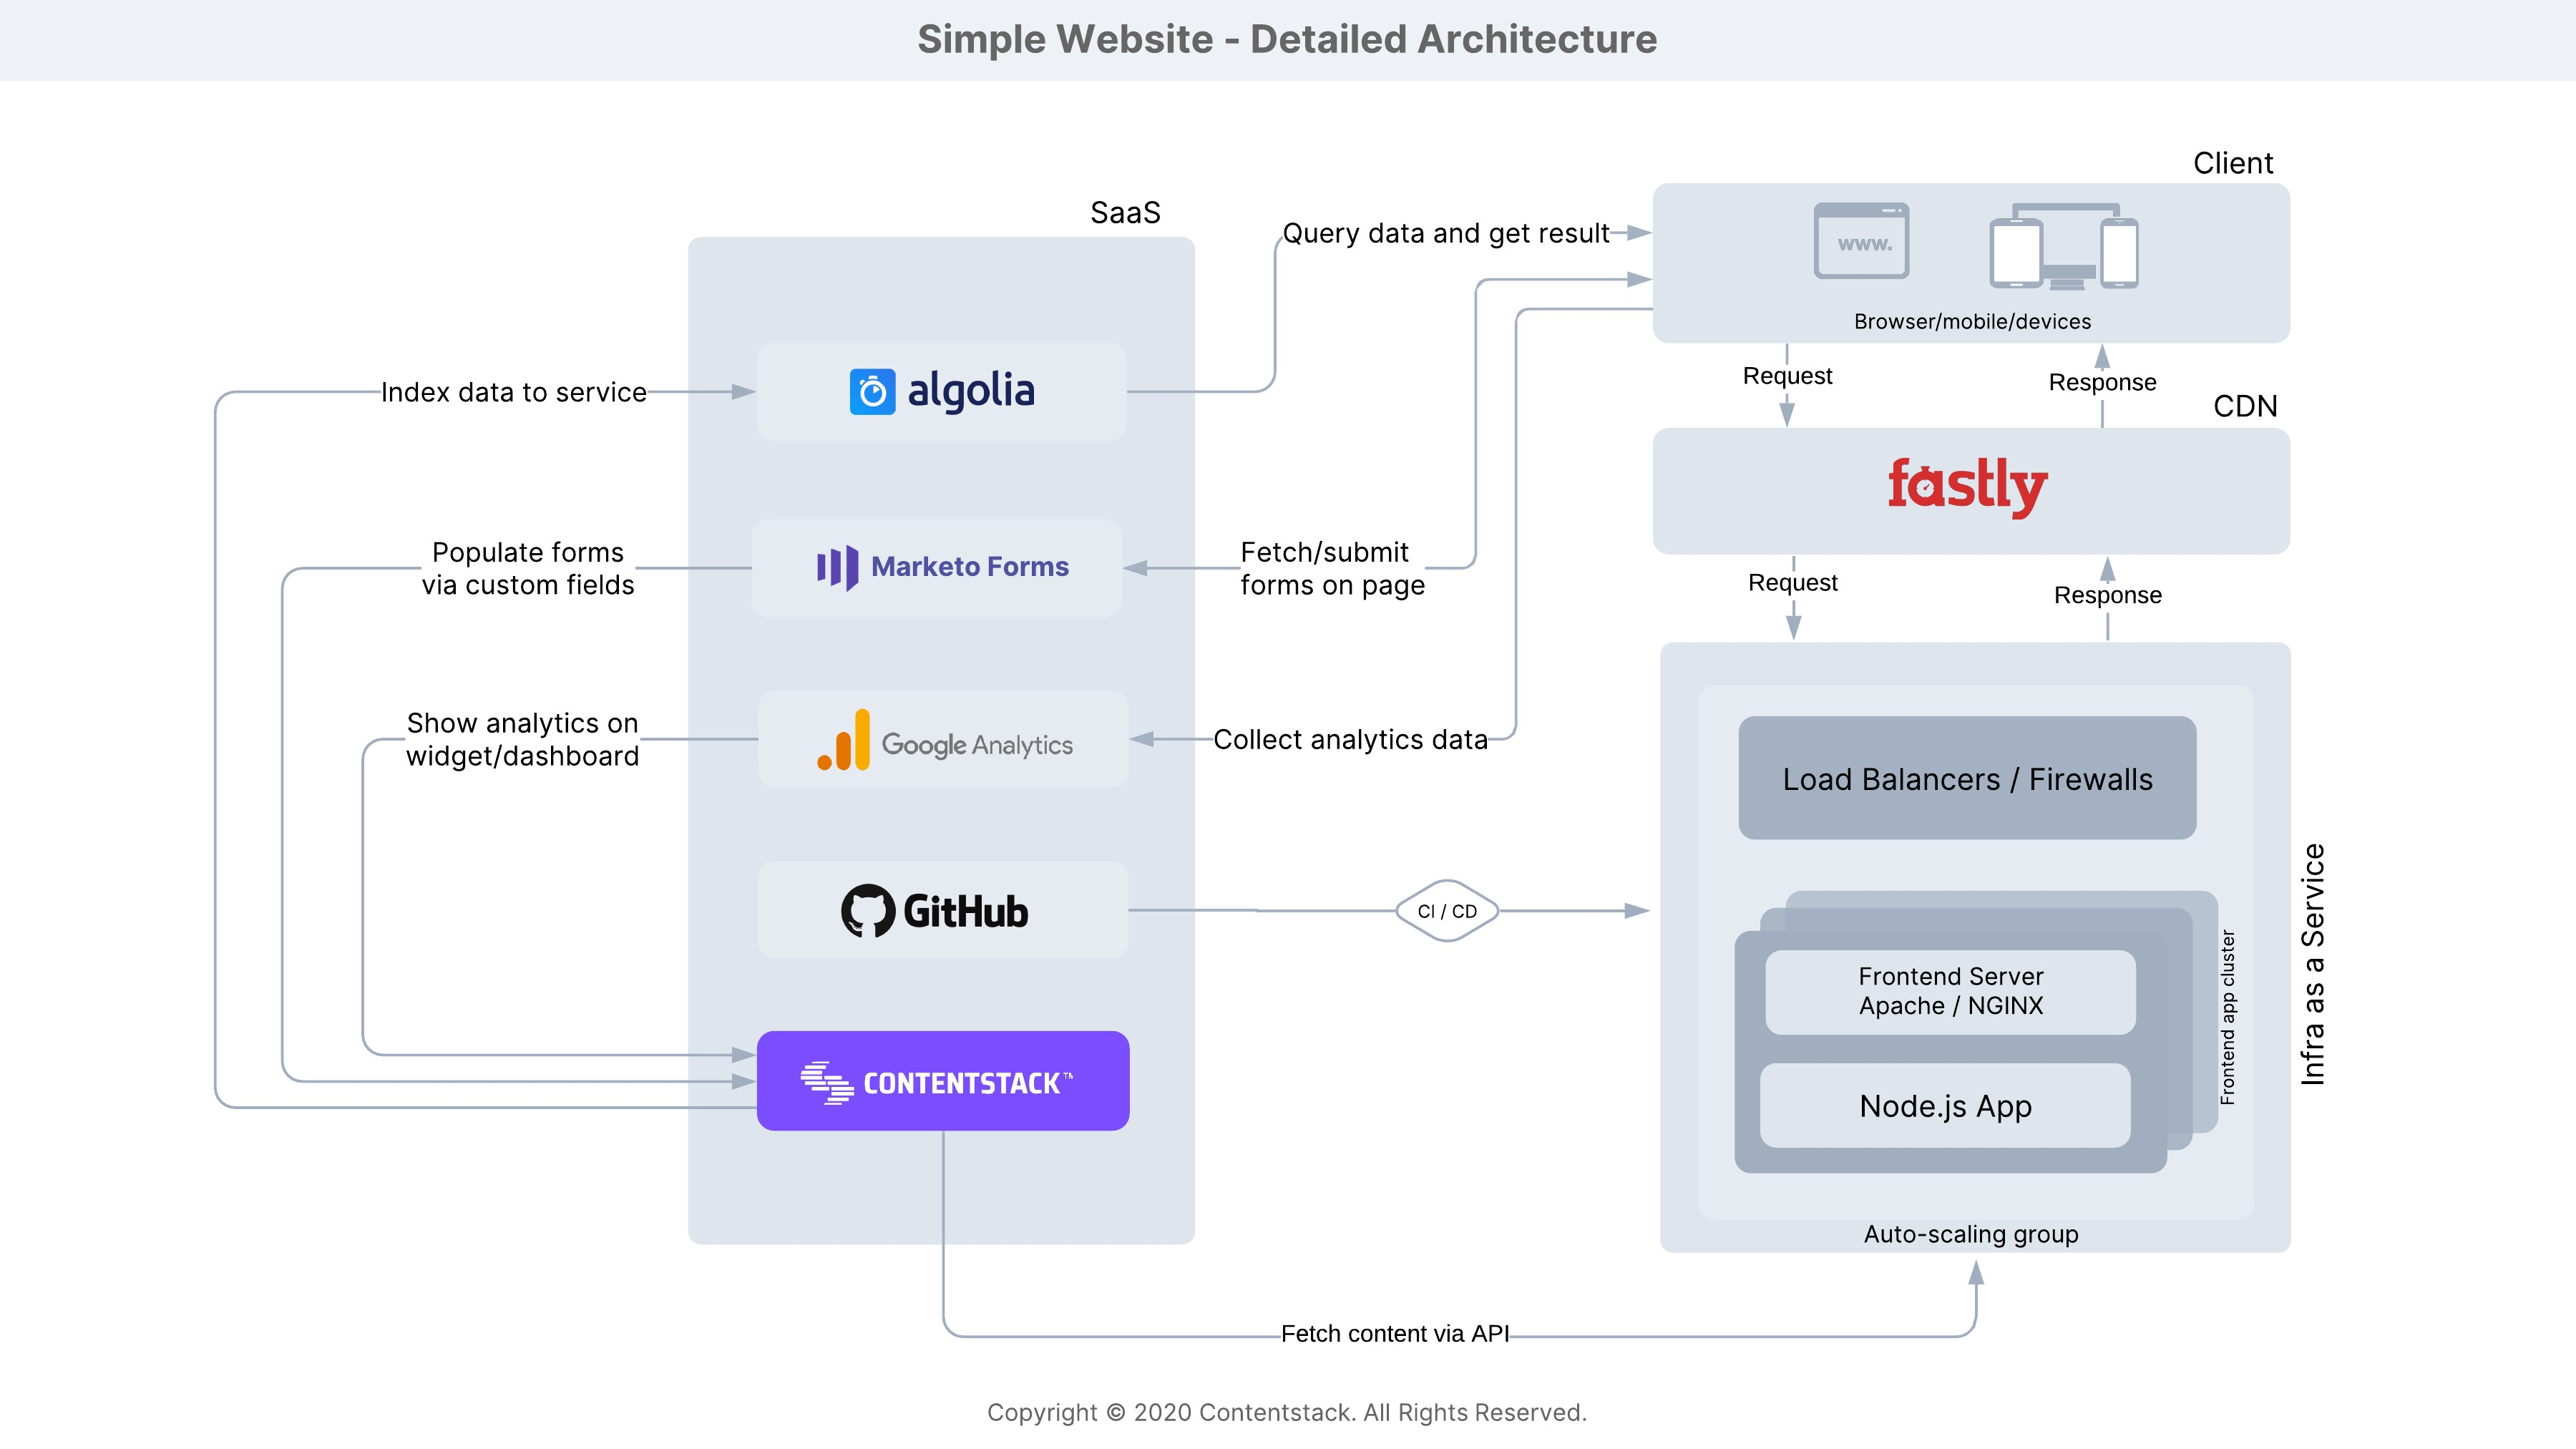 Simple_Website_-_Detailed_Architecture.jpeg